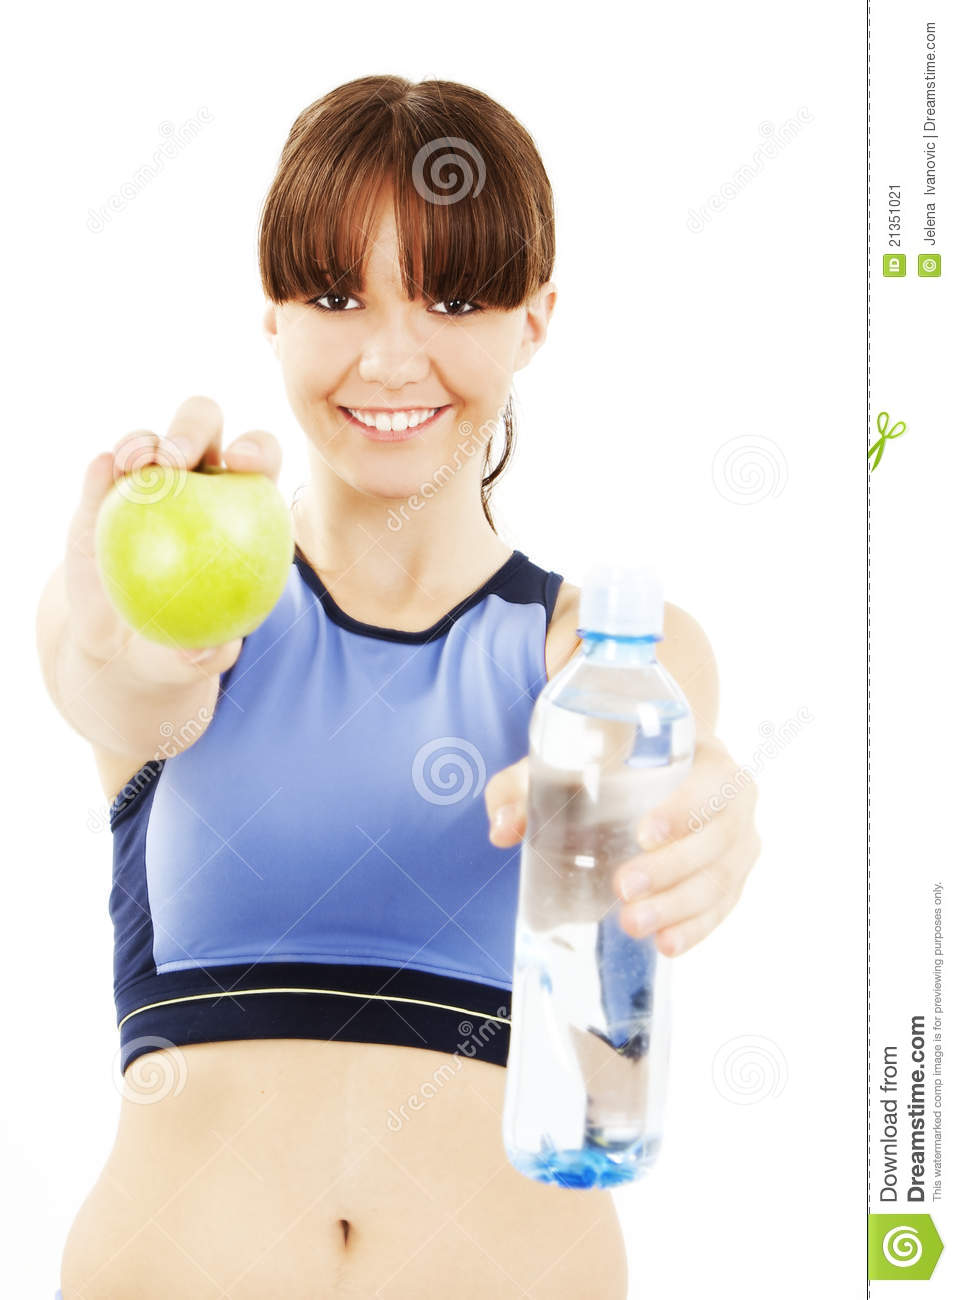 Fitness woman eating apple smiling happy